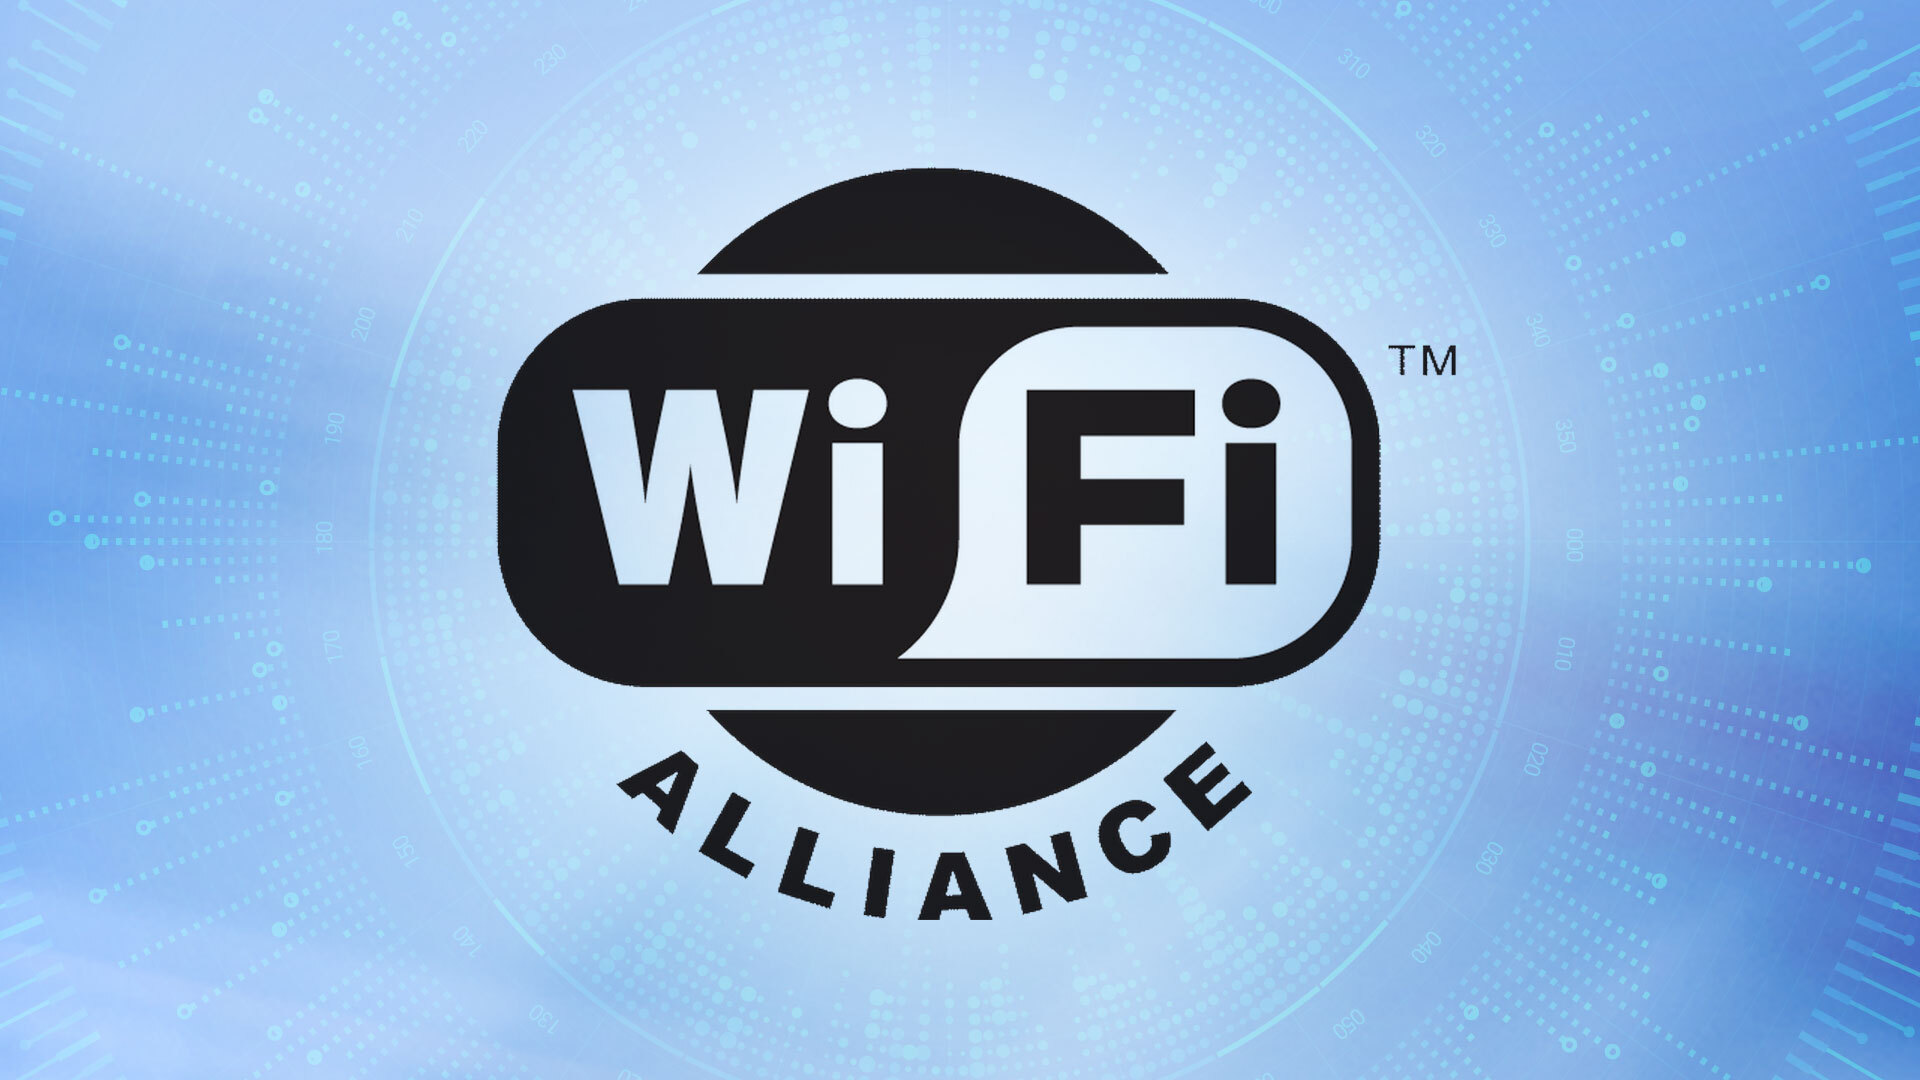 Logo of the WiFi Alliance